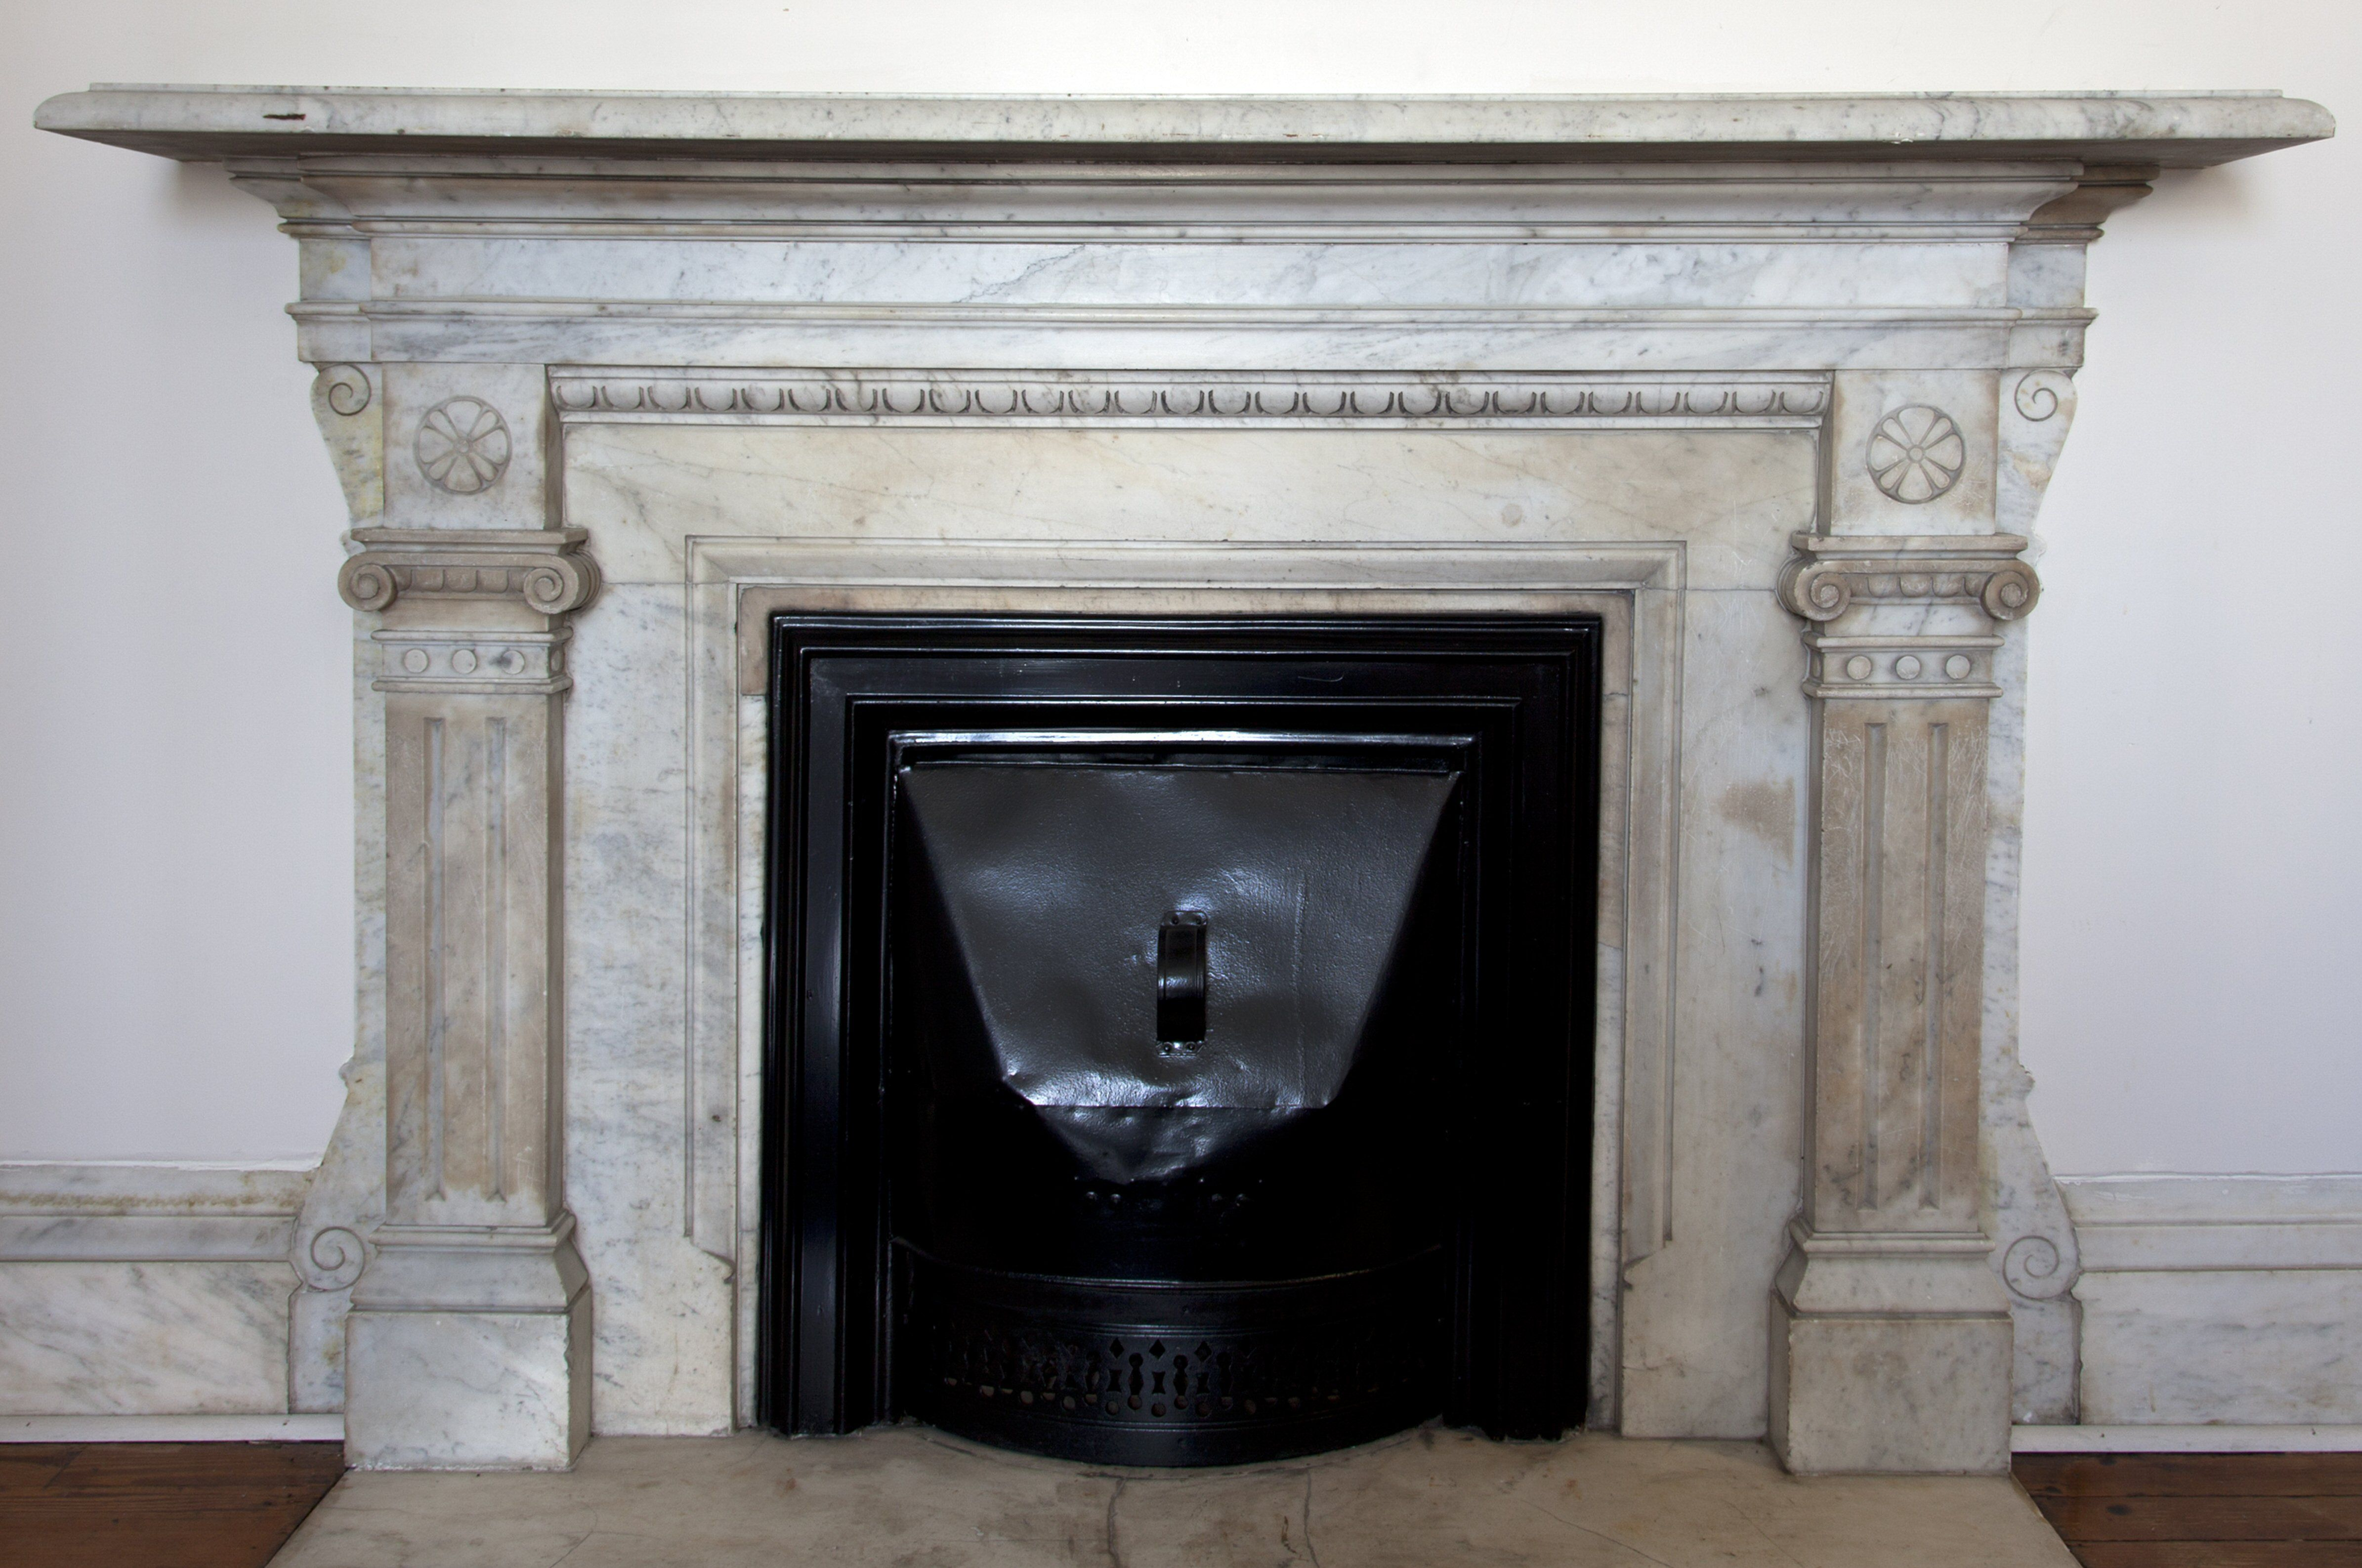 marble fireplace with two classical pilasters on either side of the opening and below the mantle